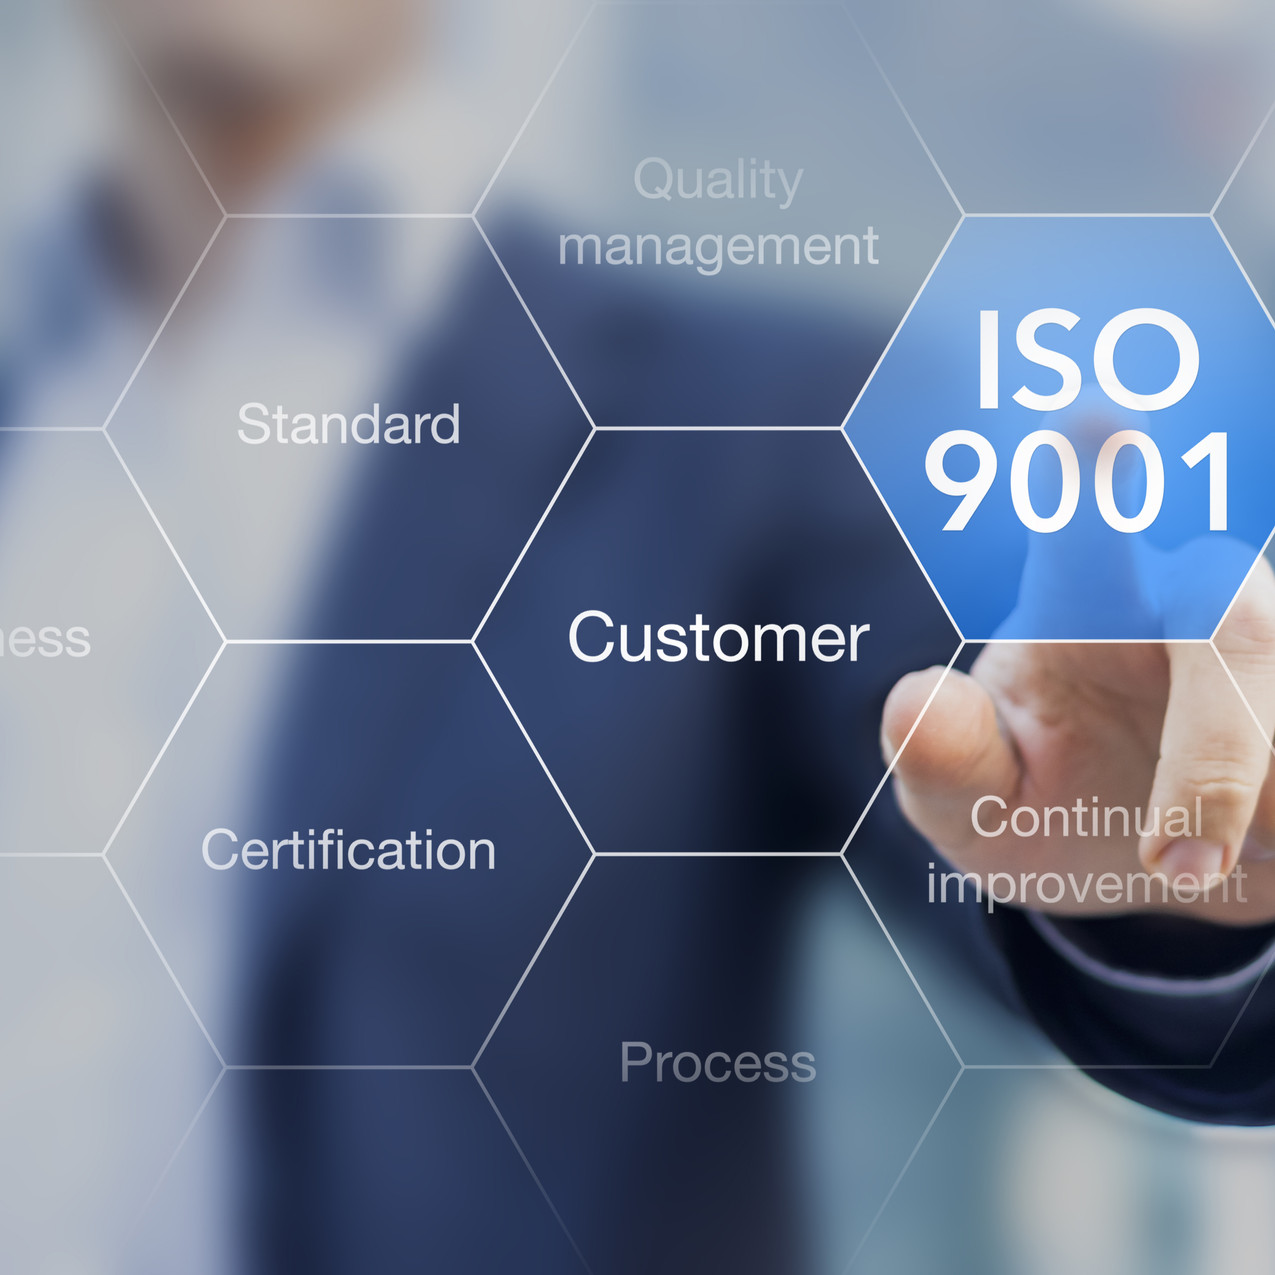 ISO 9001 standard for quality management